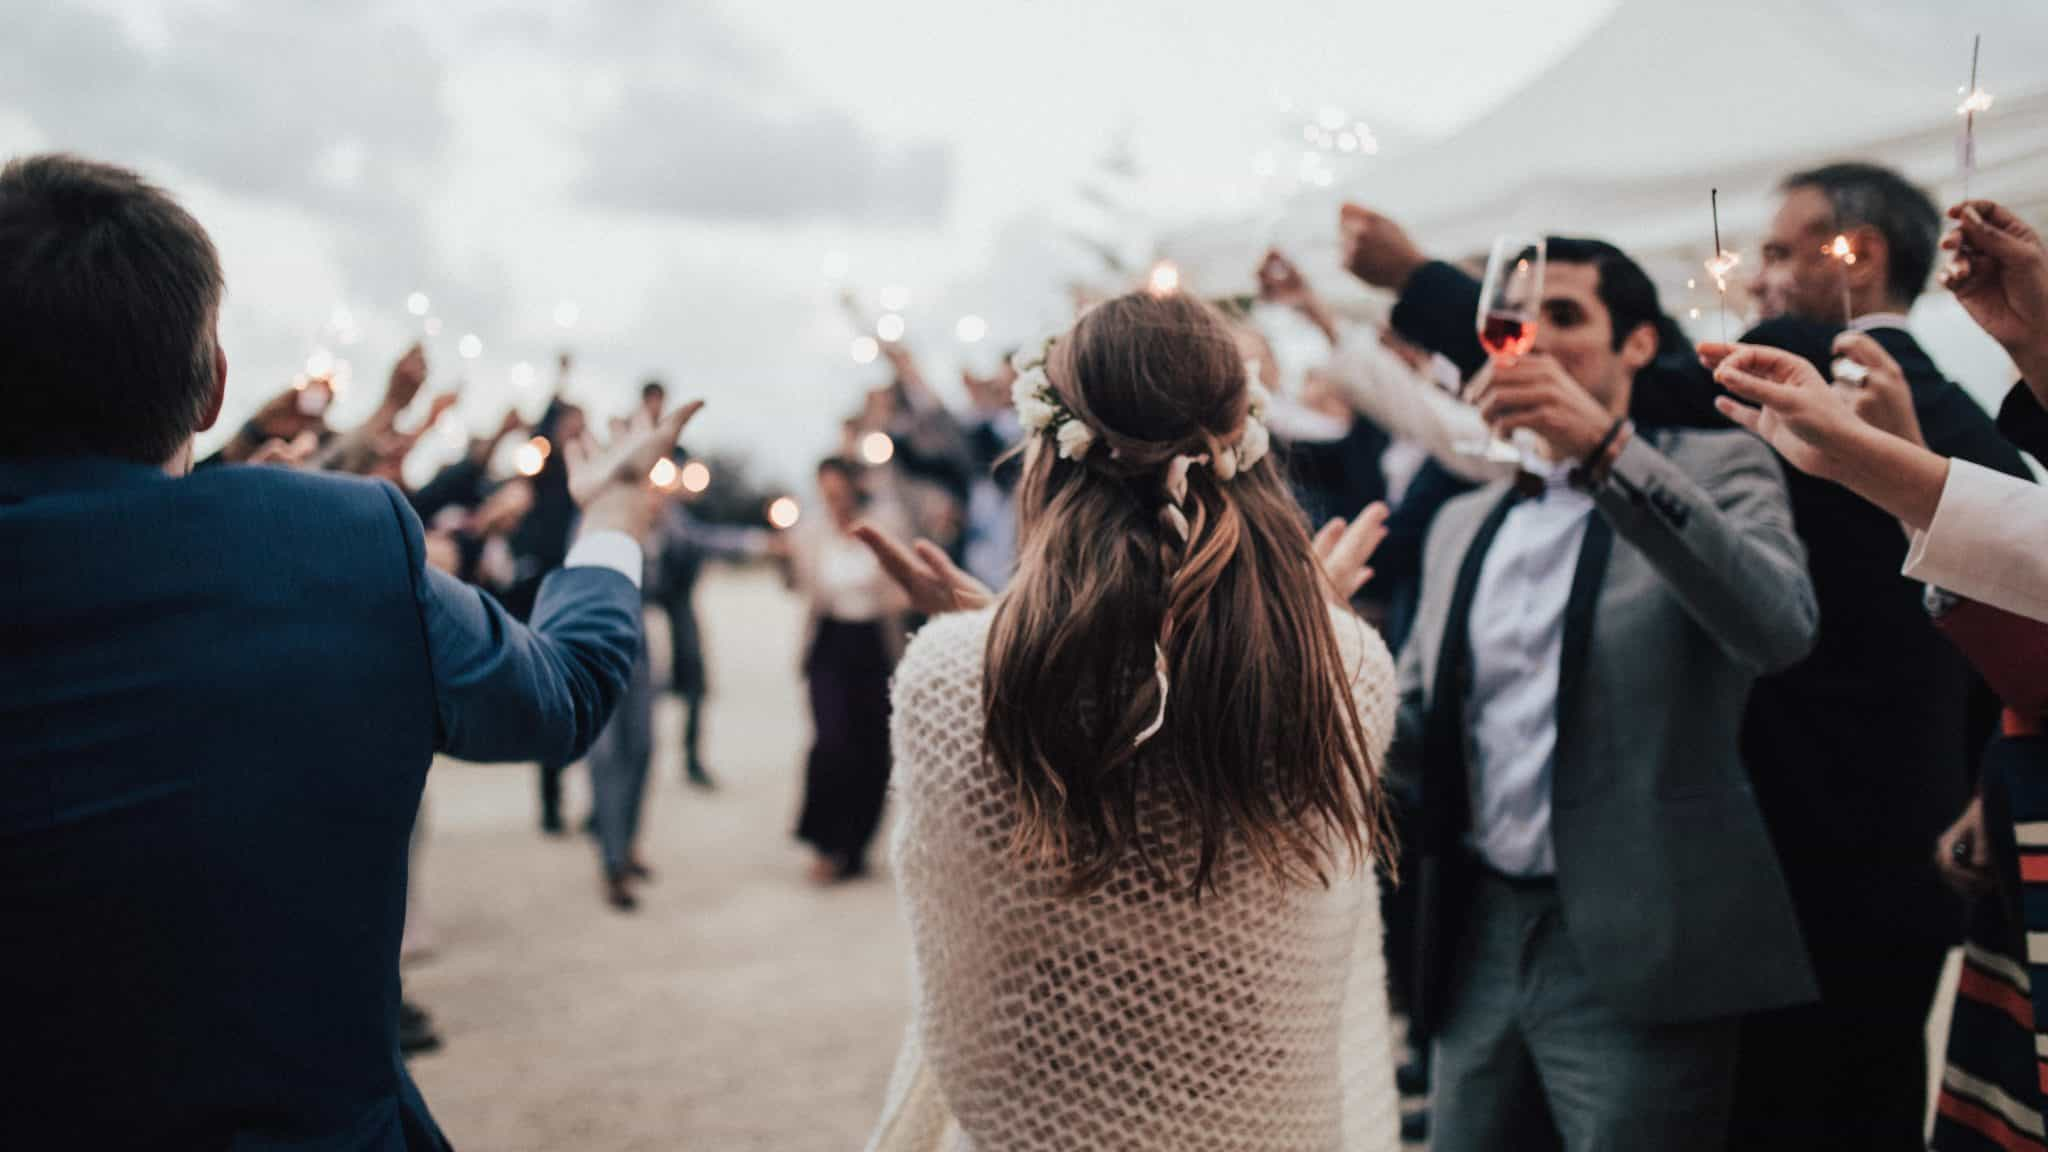 2019 RSVPify Wedding Guide 2019. Digital wedding trends for 2019.